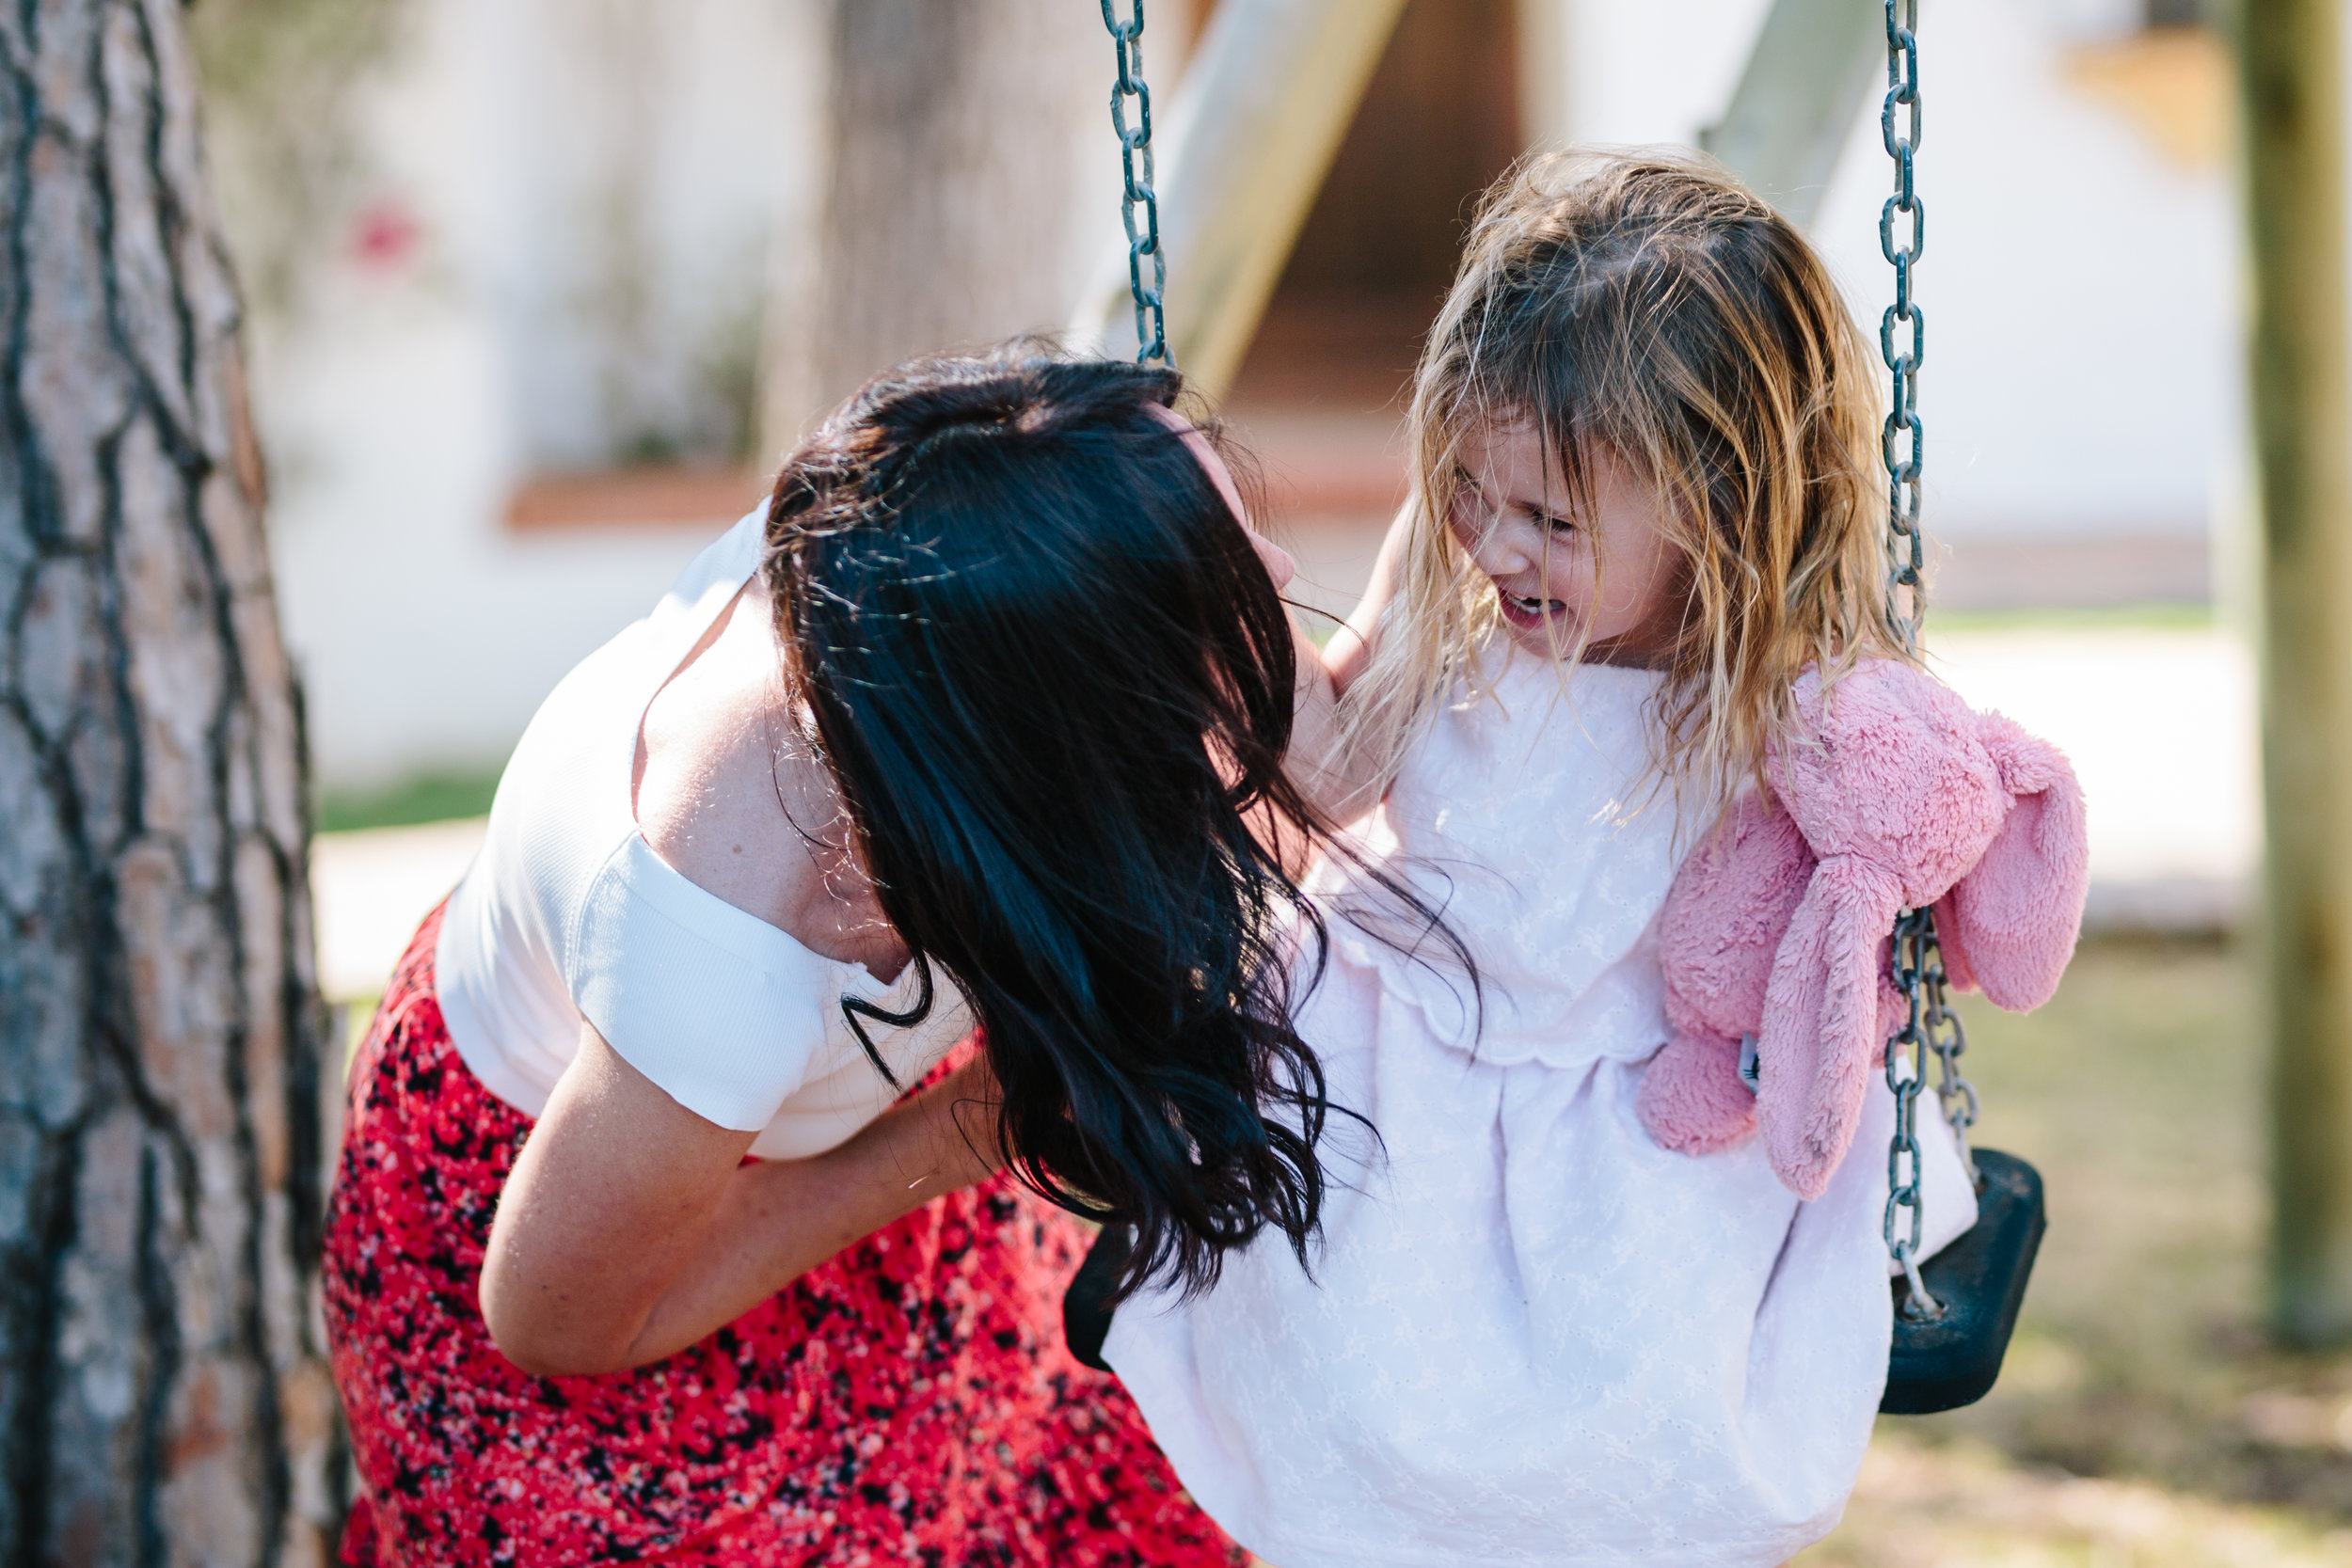 Mum and daughter on swings - london family photographer